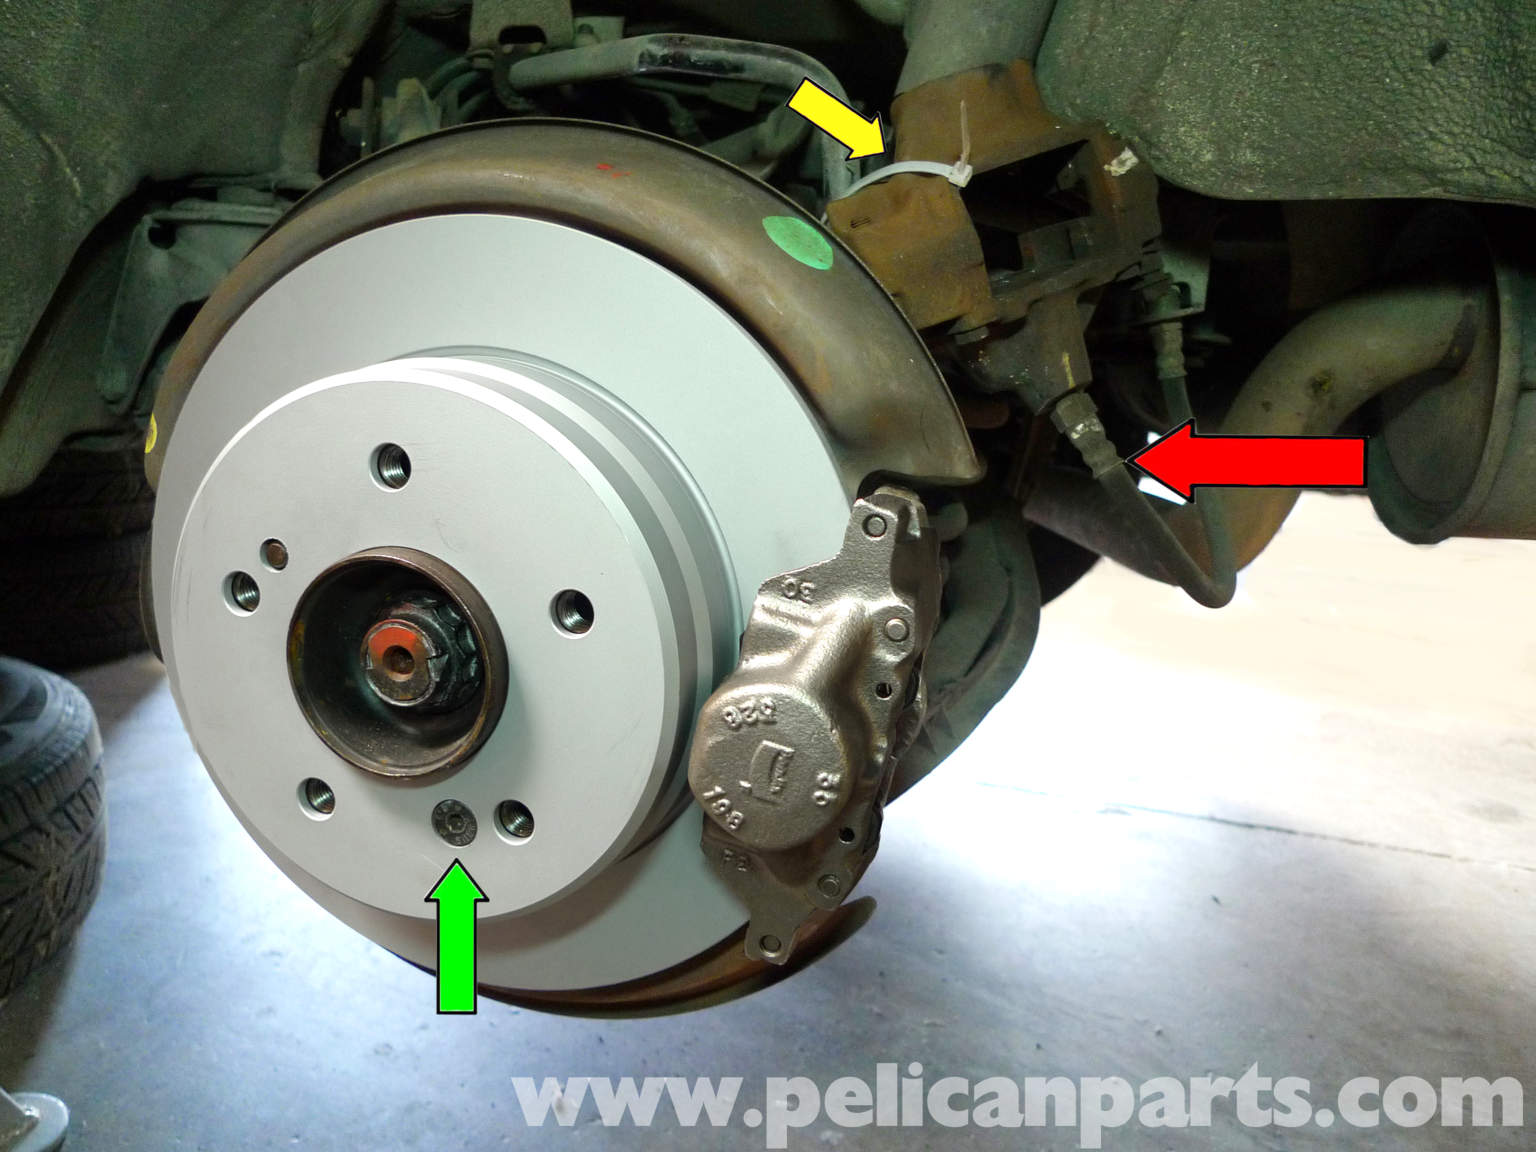 Mercedes benz 190e rear rotor and caliper replacement for Mercedes benz brake calipers